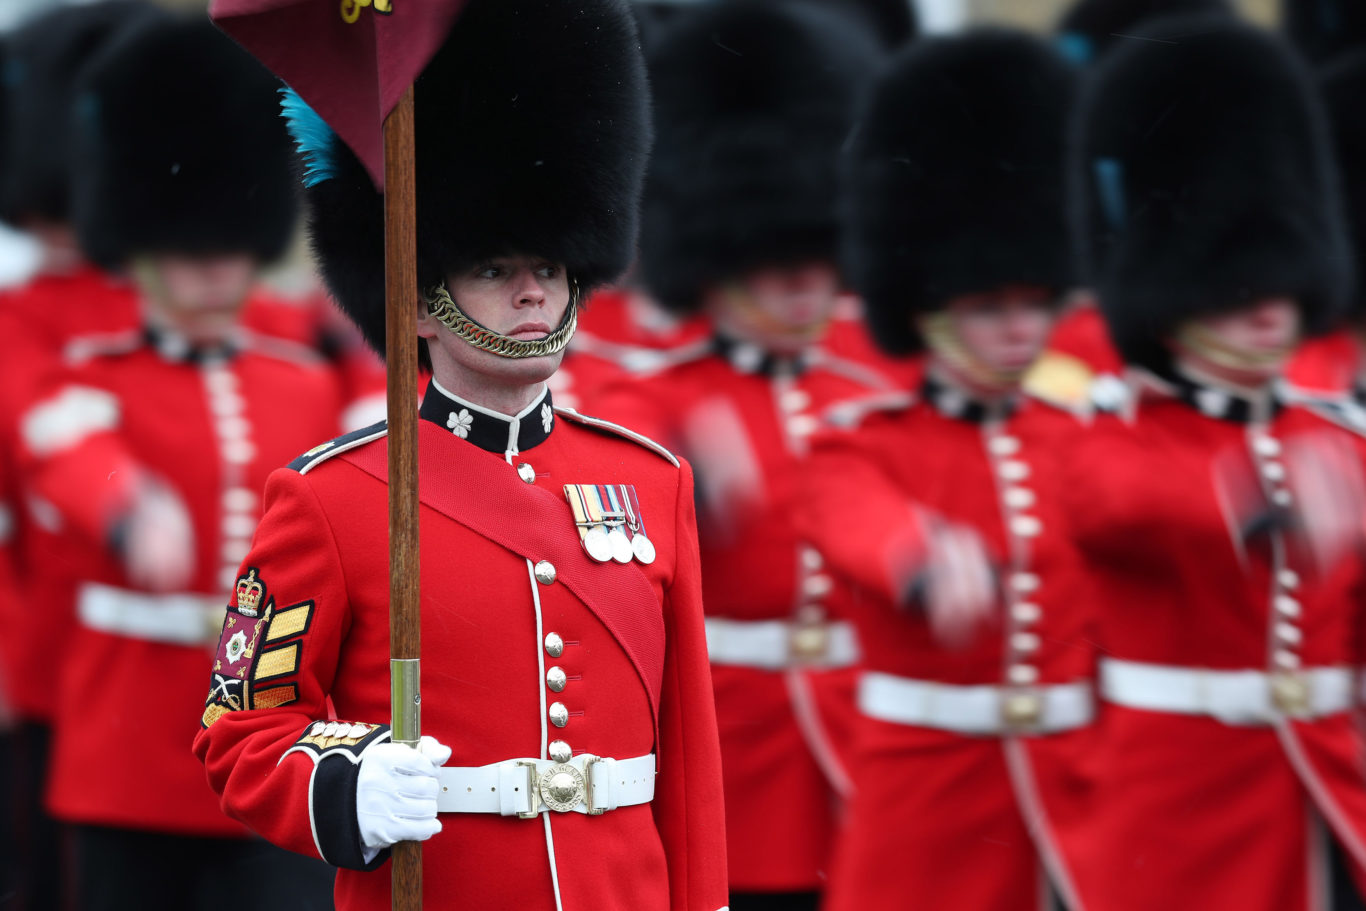 Irish Guards during the regiment's St Patrick's Day parade at Cavalry Barracks in Hounslow (Jonathan Brady/PA)